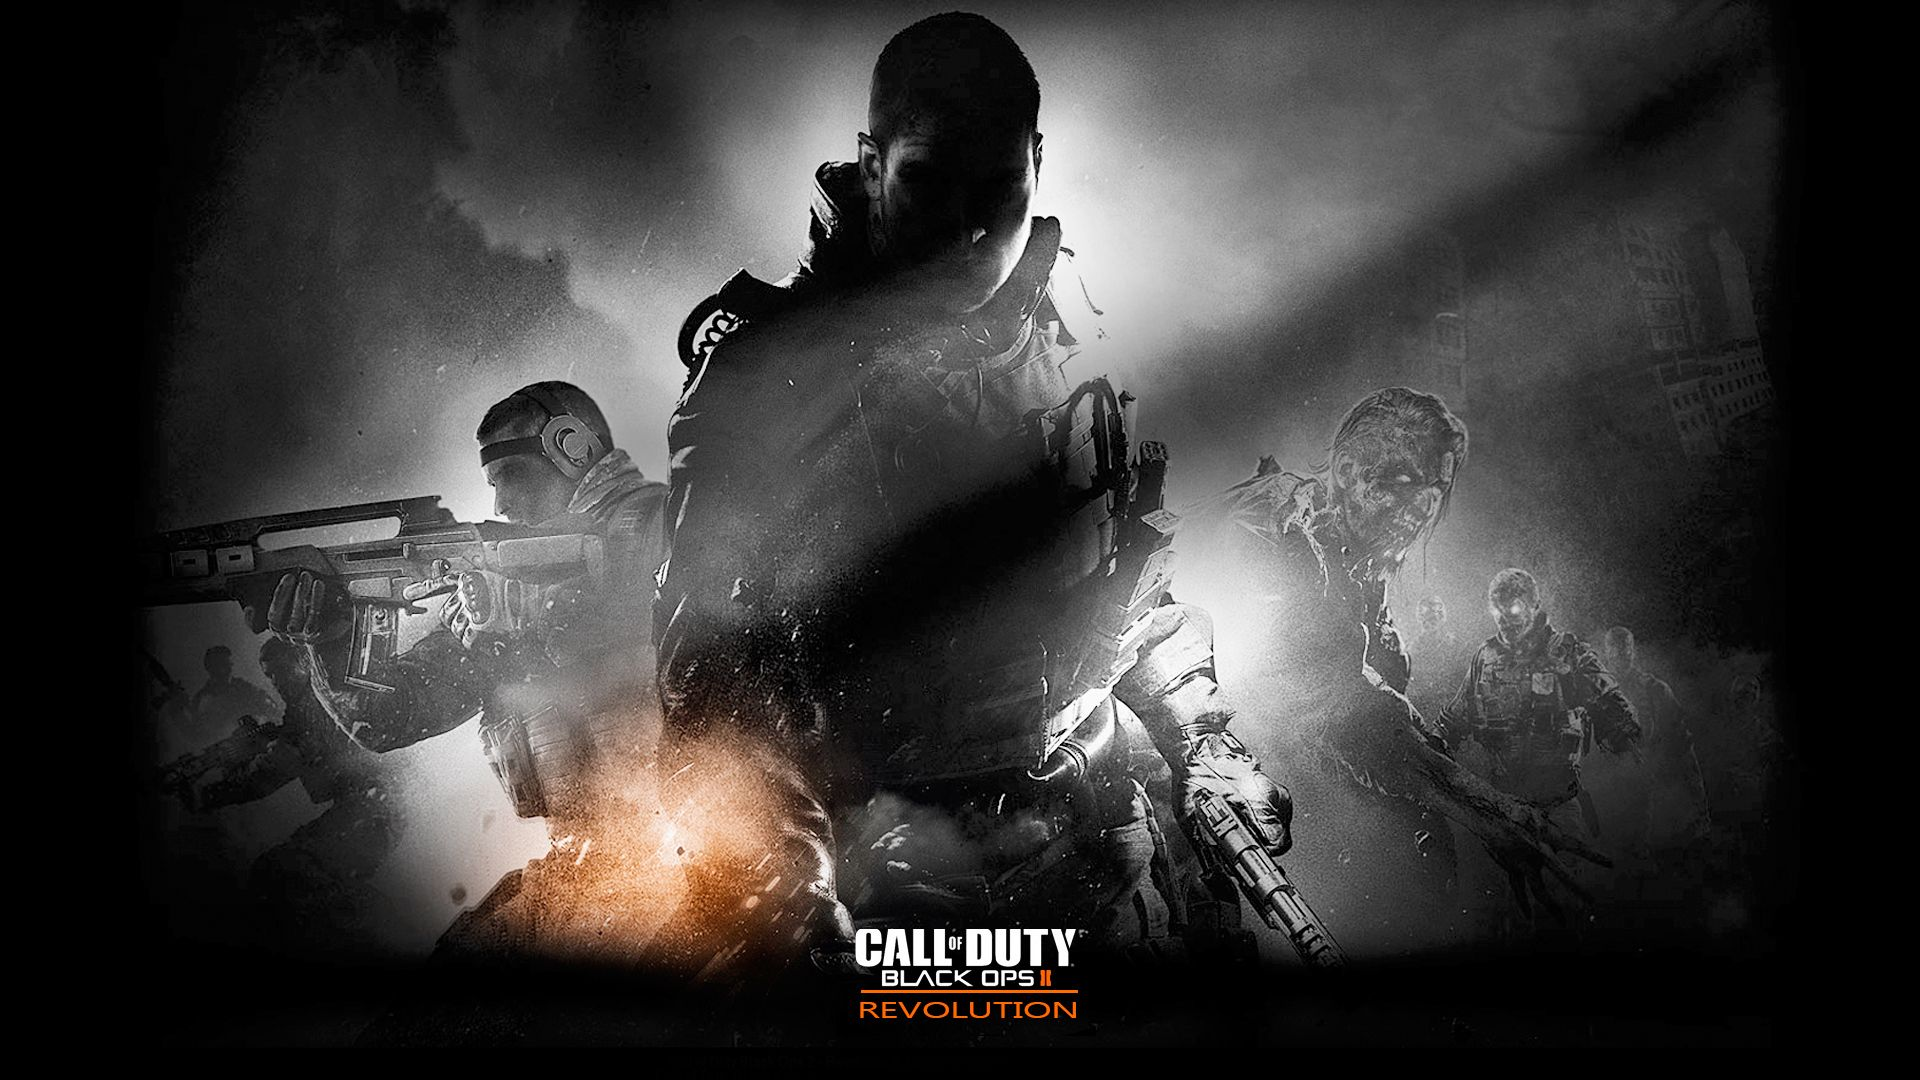 Call Of Duty Black Ops 2 Revolution Wallpapers Call Of Duty